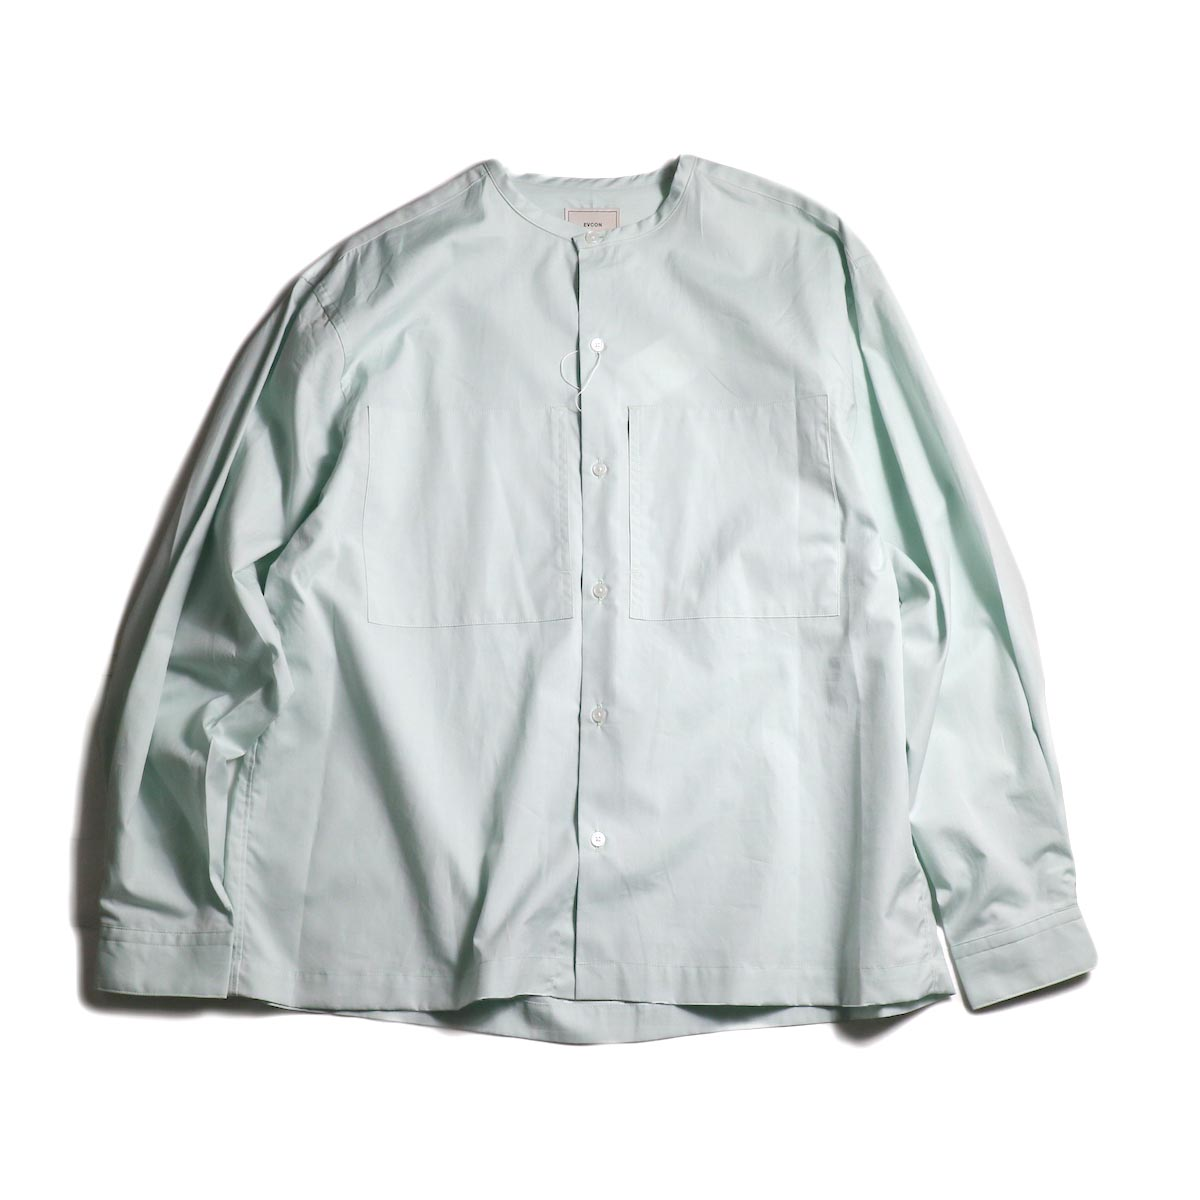 EVCON / NO COLLAR SHIRT (Mint)